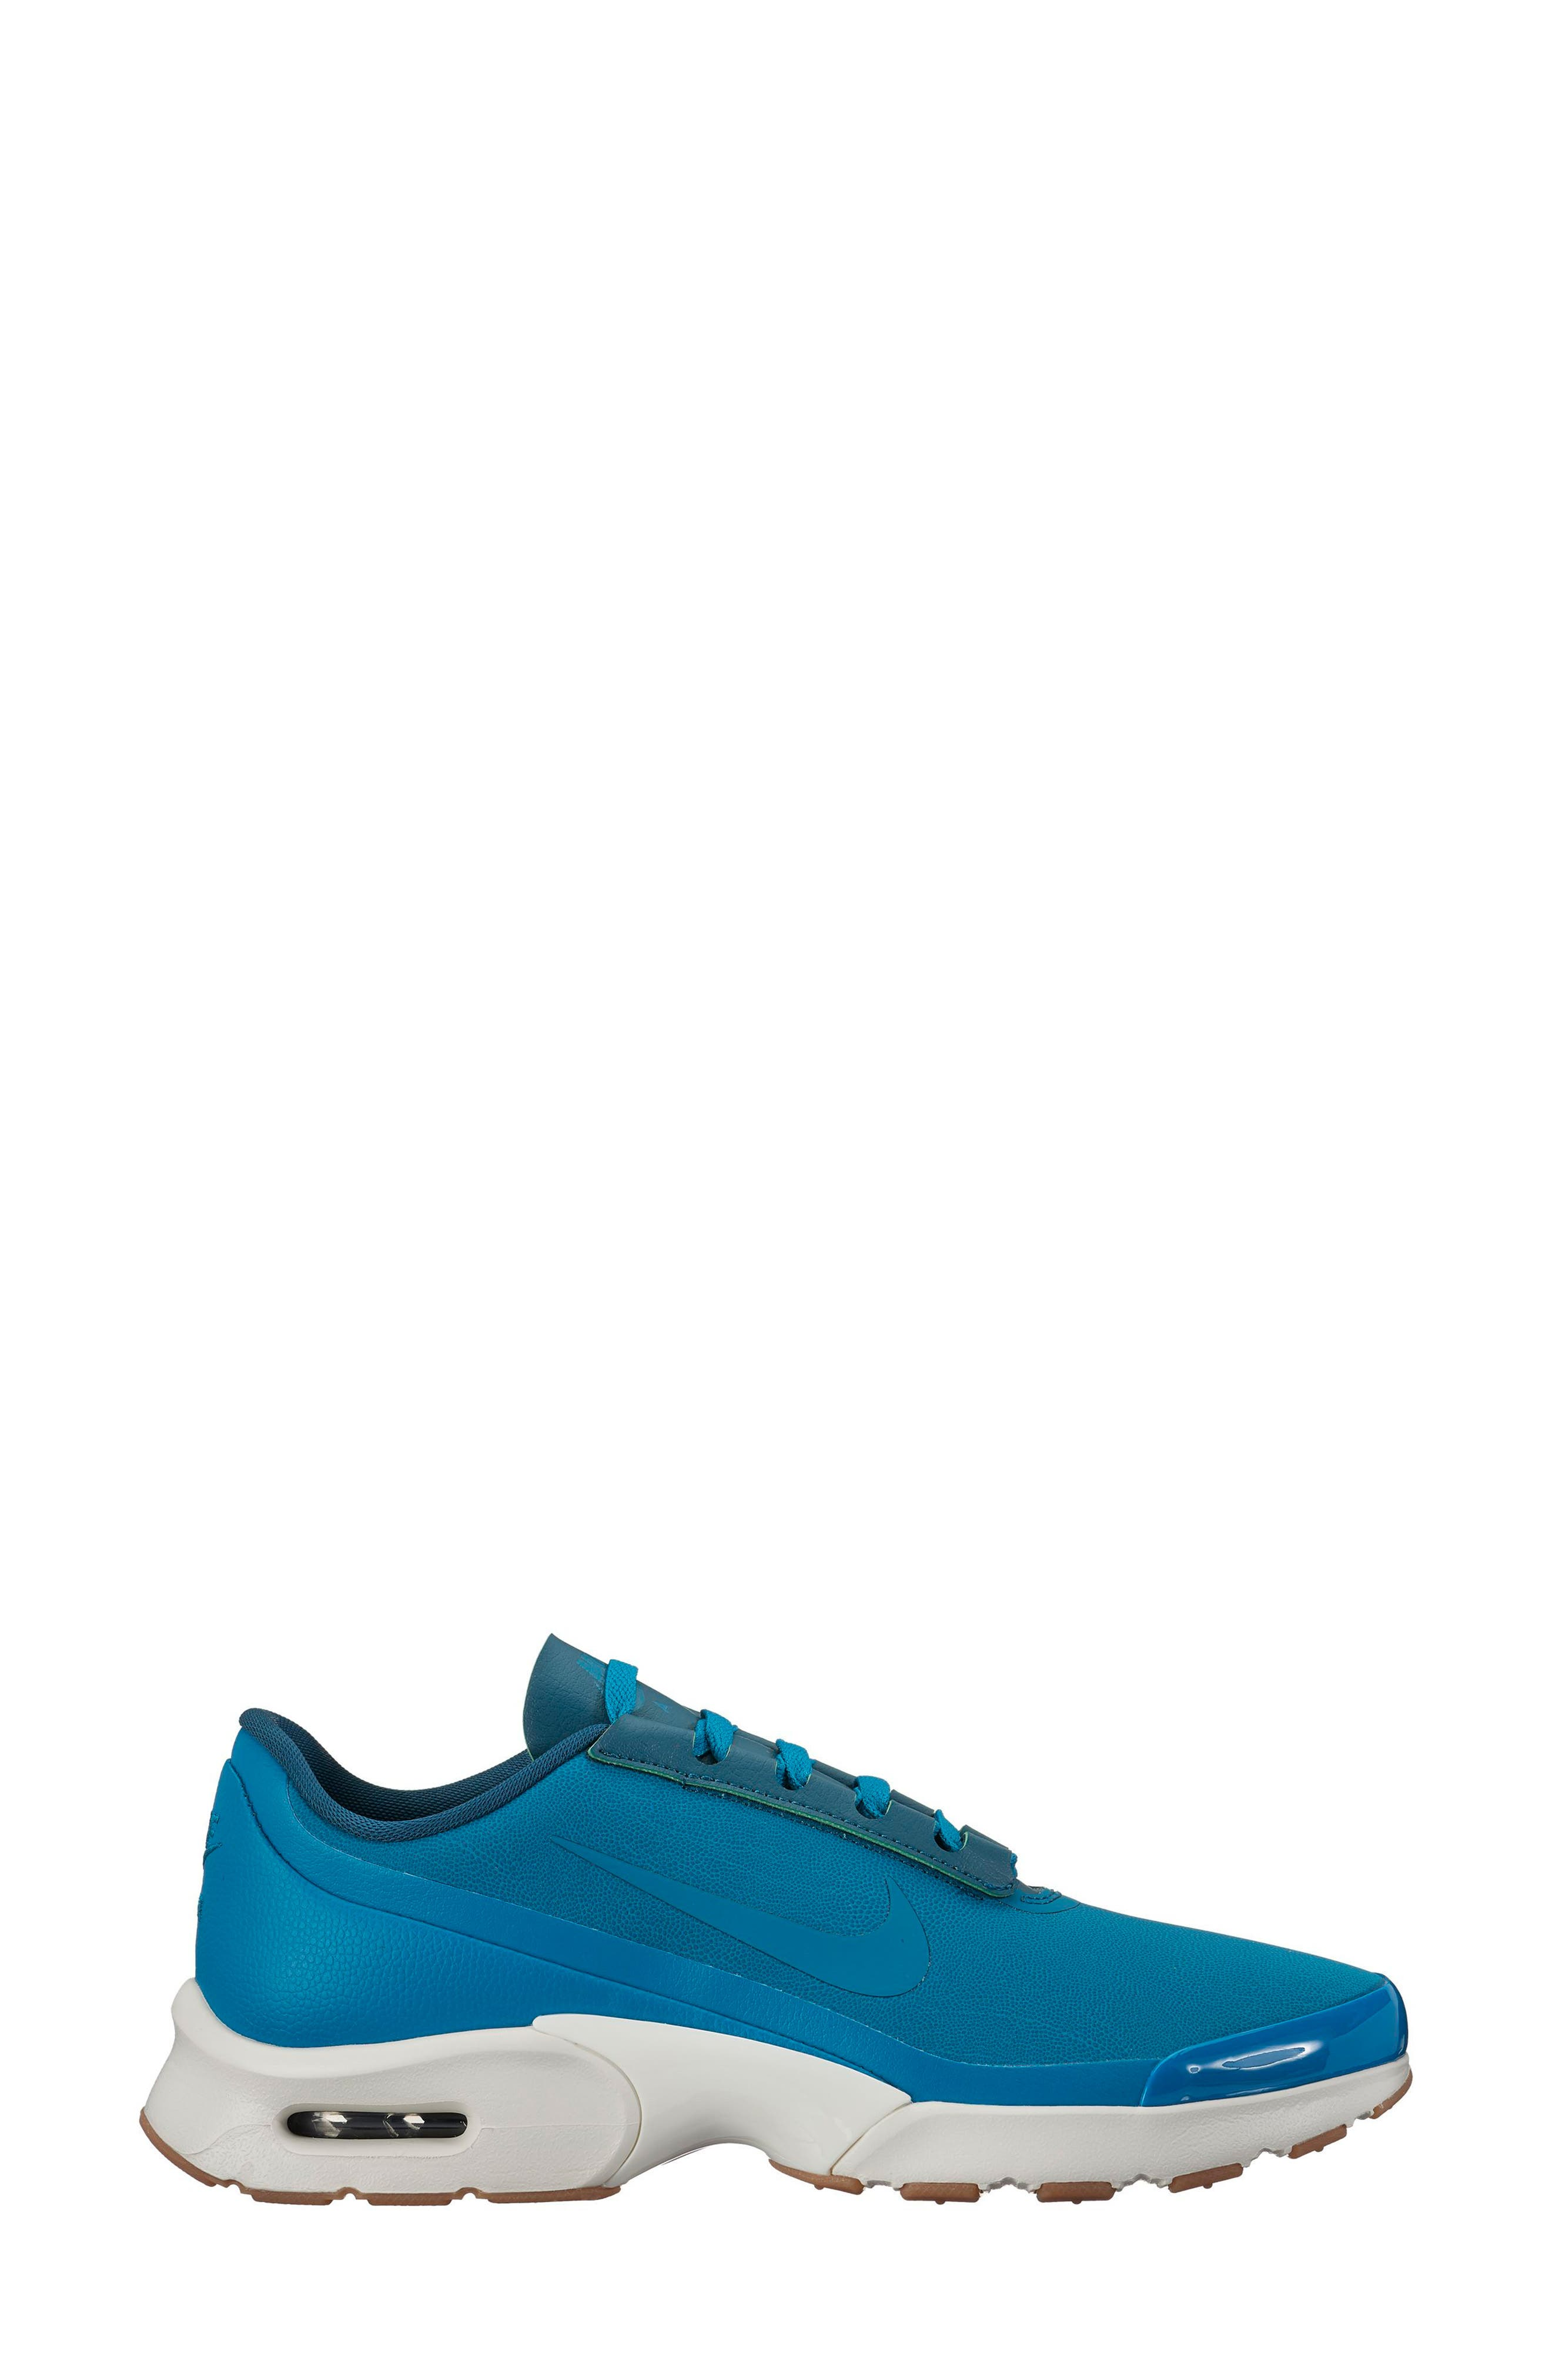 Air Max Jewell SE Sneaker,                         Main,                         color, 440